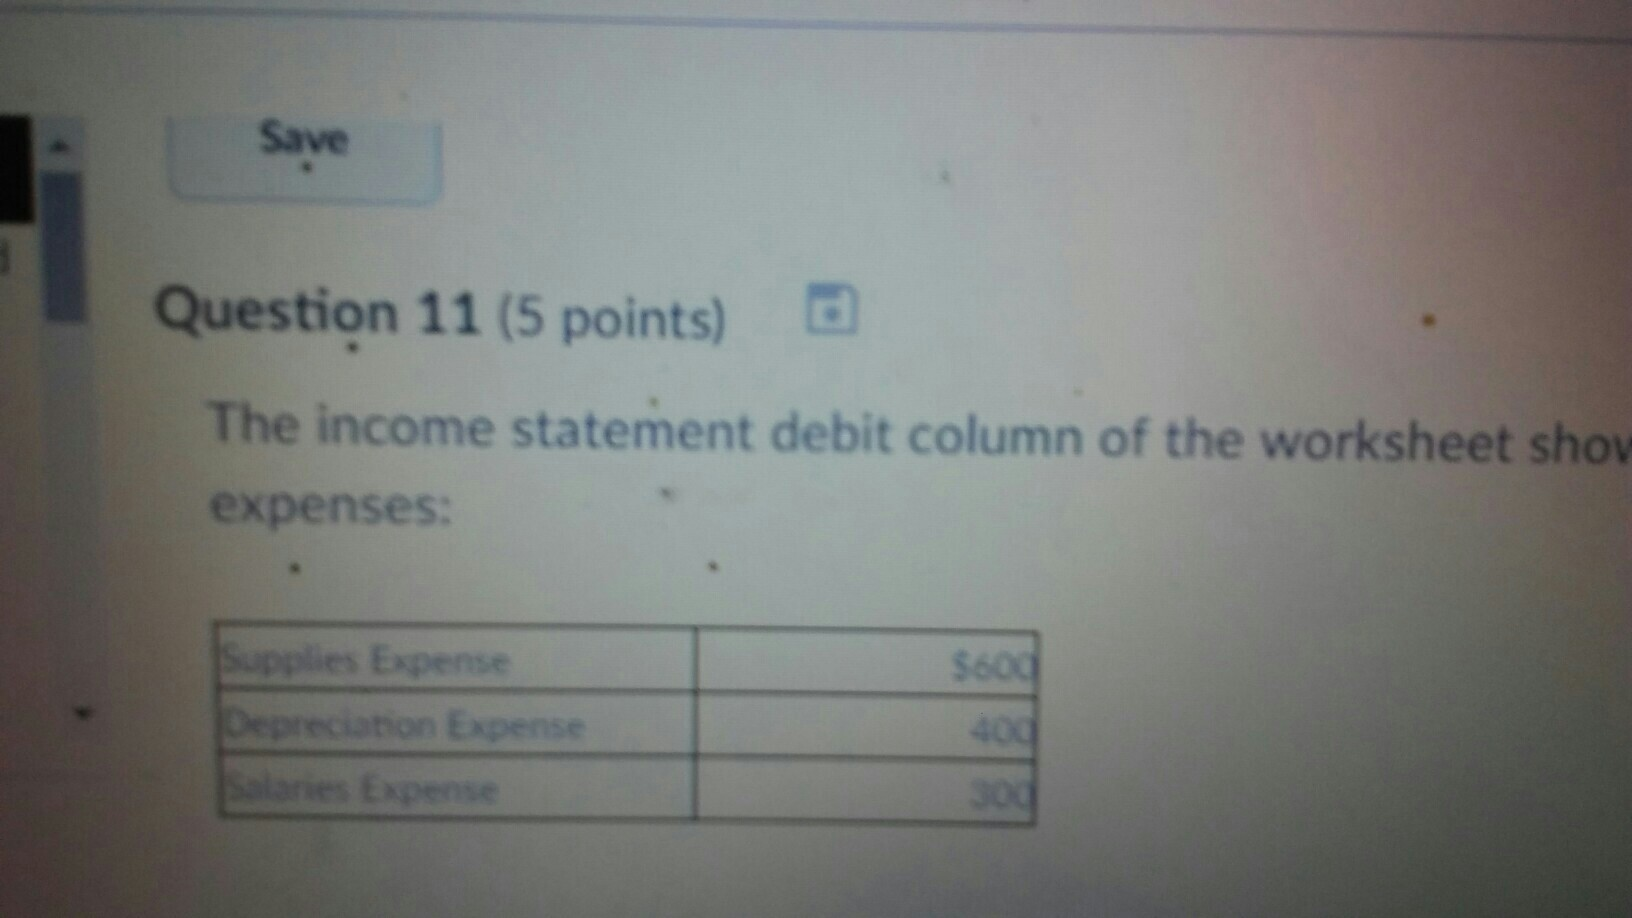 The Income Statement Debit Column Of The Worksheet Showed